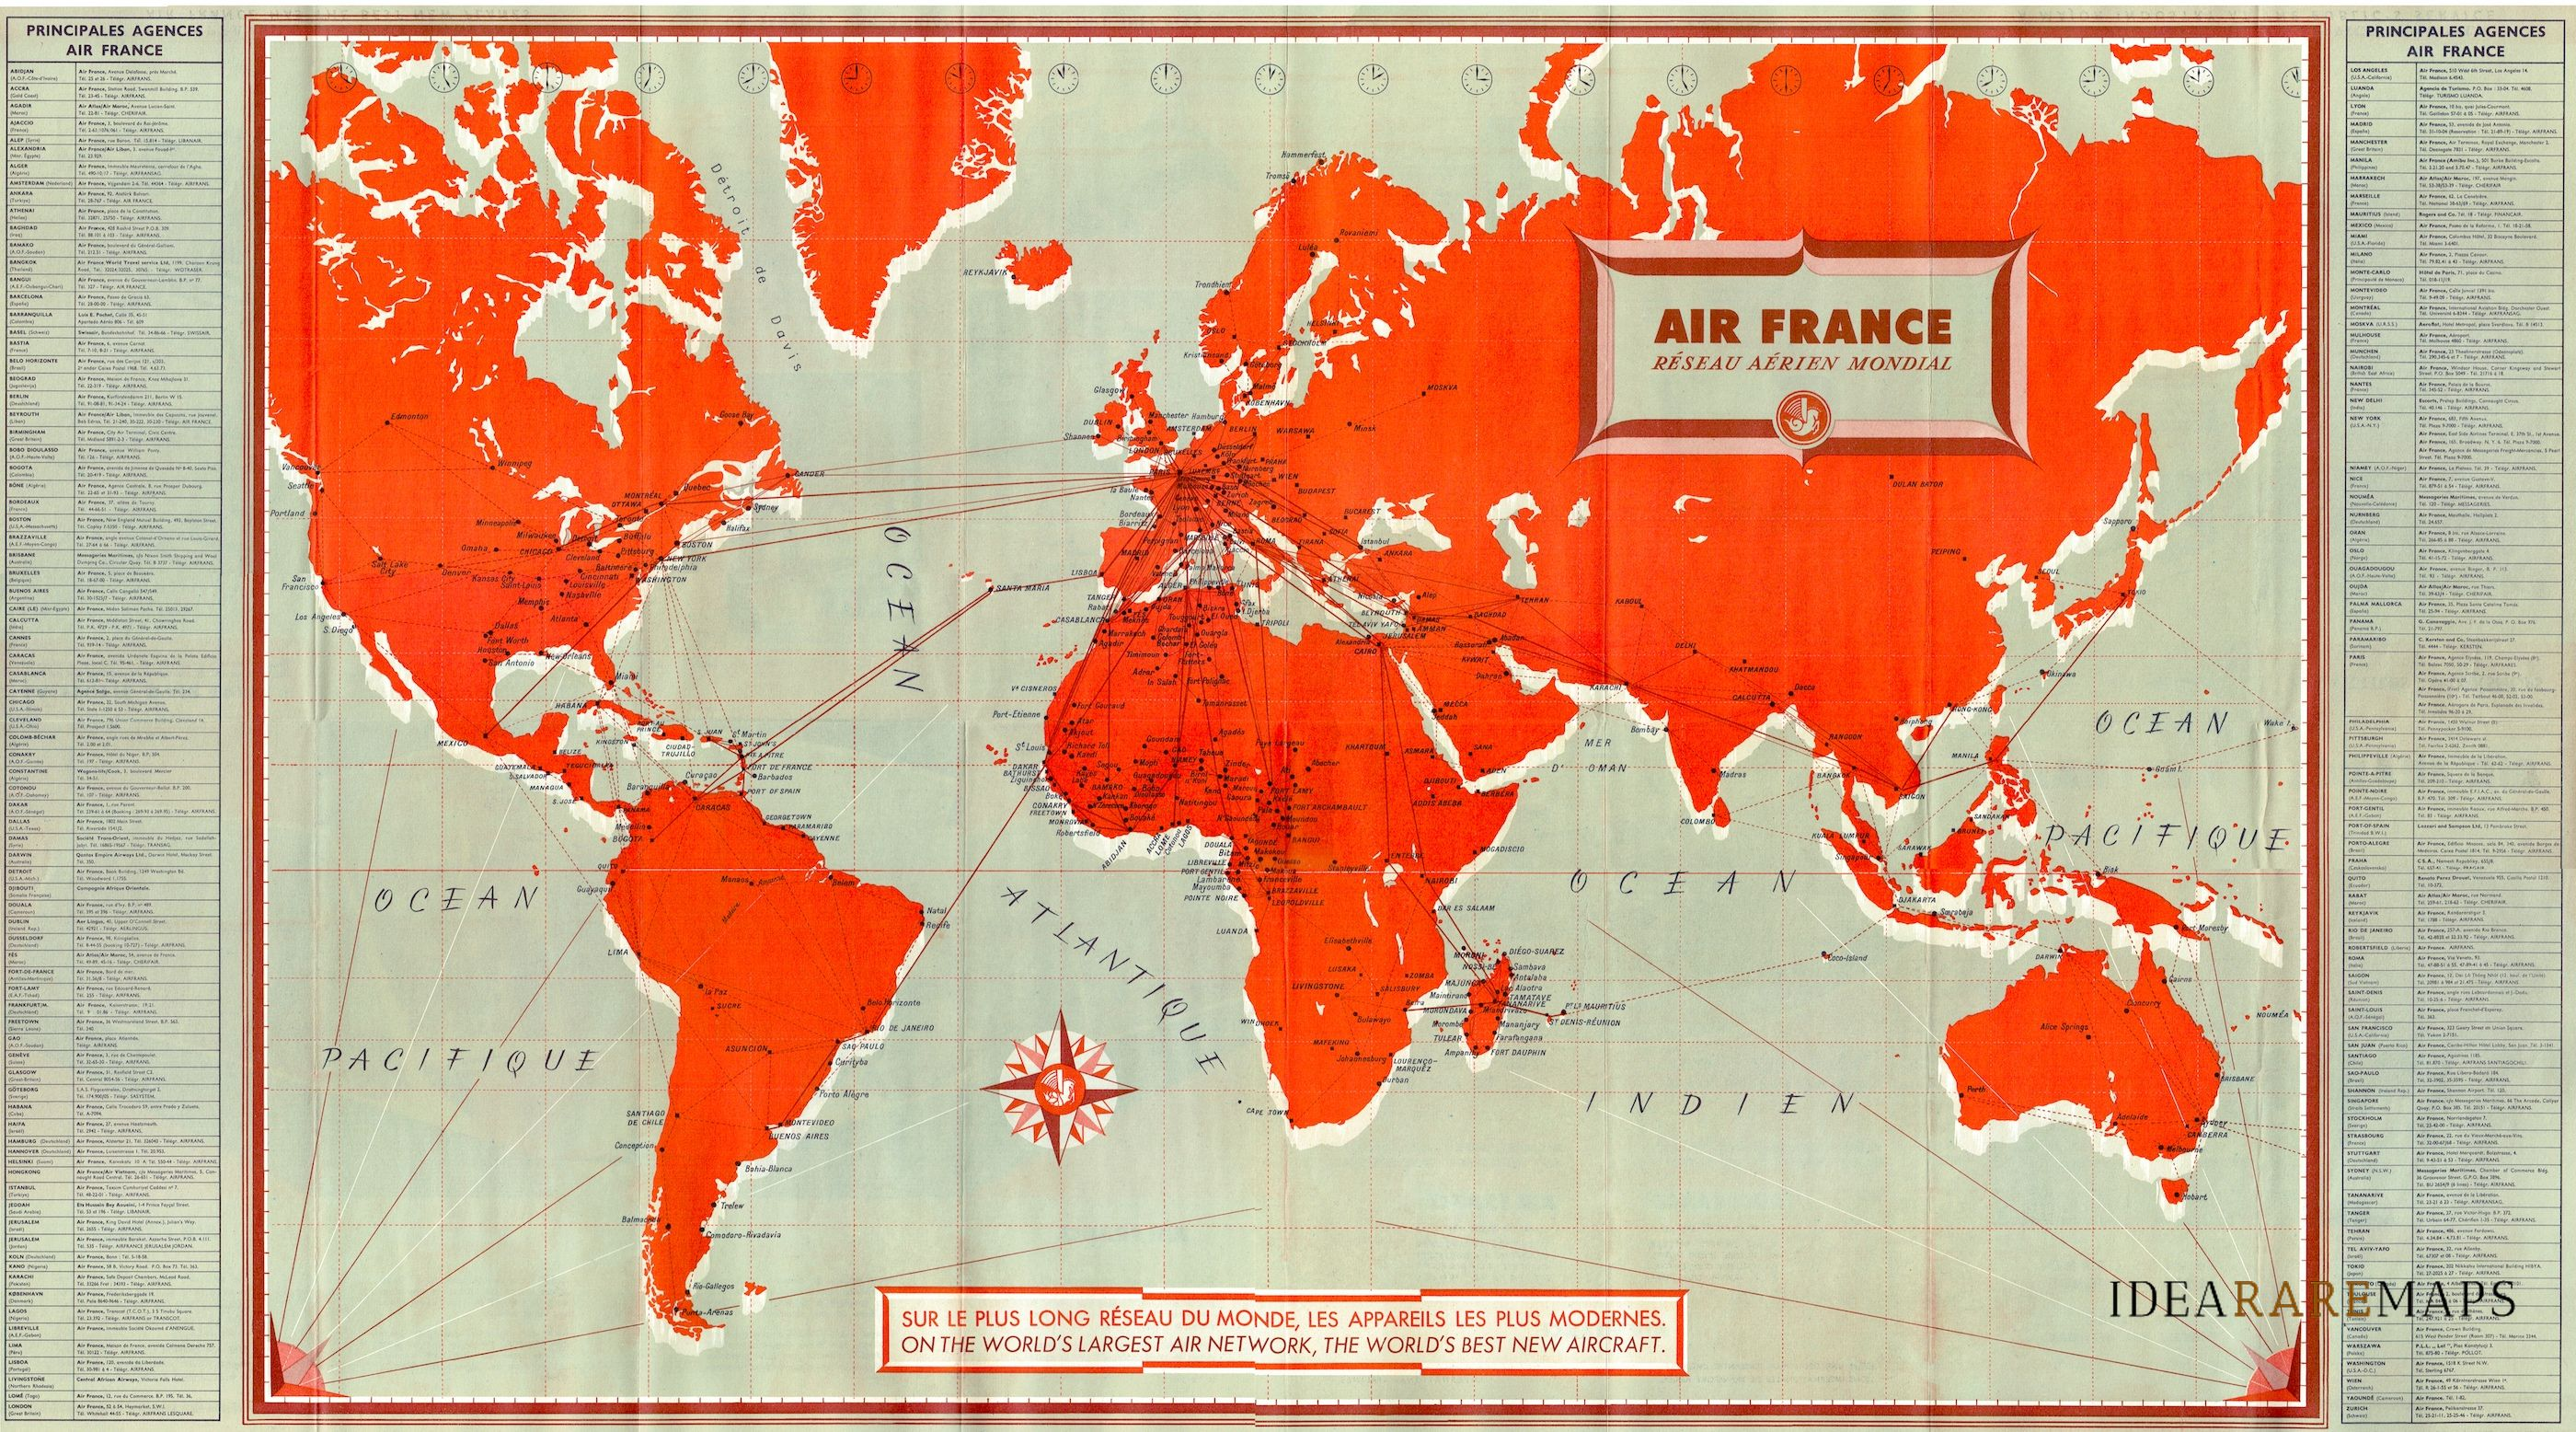 Map Of France Showing Nice.World Map Air France Reseau Aerien Mondial Idea Rare Maps